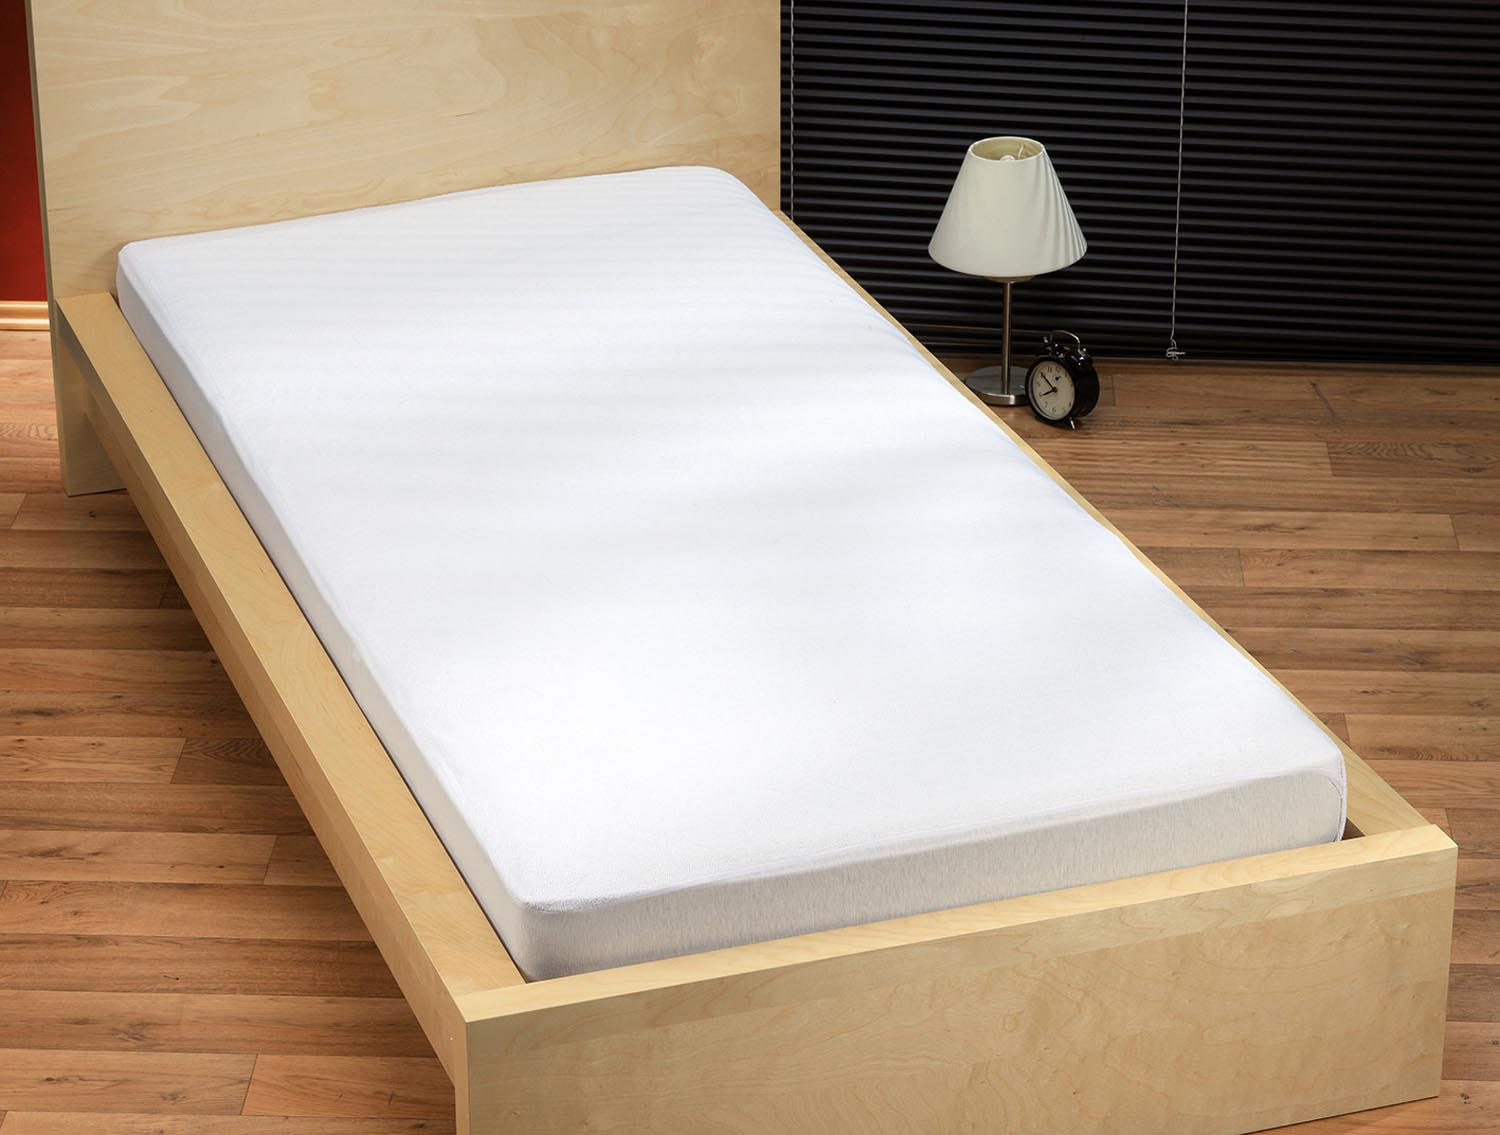 High quality fitted sheet to protect mattress from wetness